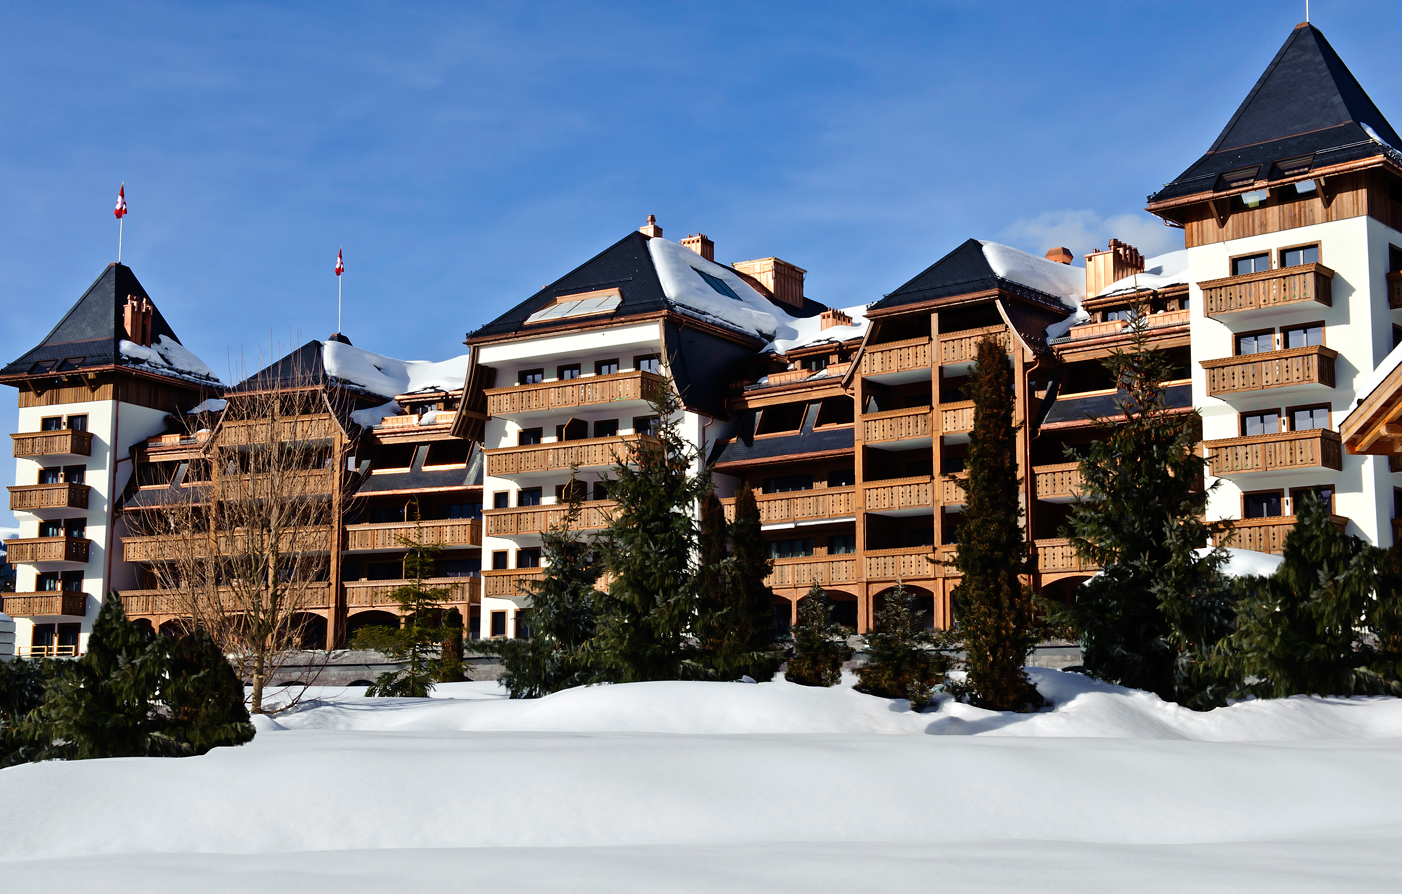 Hotel Alpina Gstaad Reviews Of Hotels In Gstaad Switzerland The - Alpina hotel switzerland